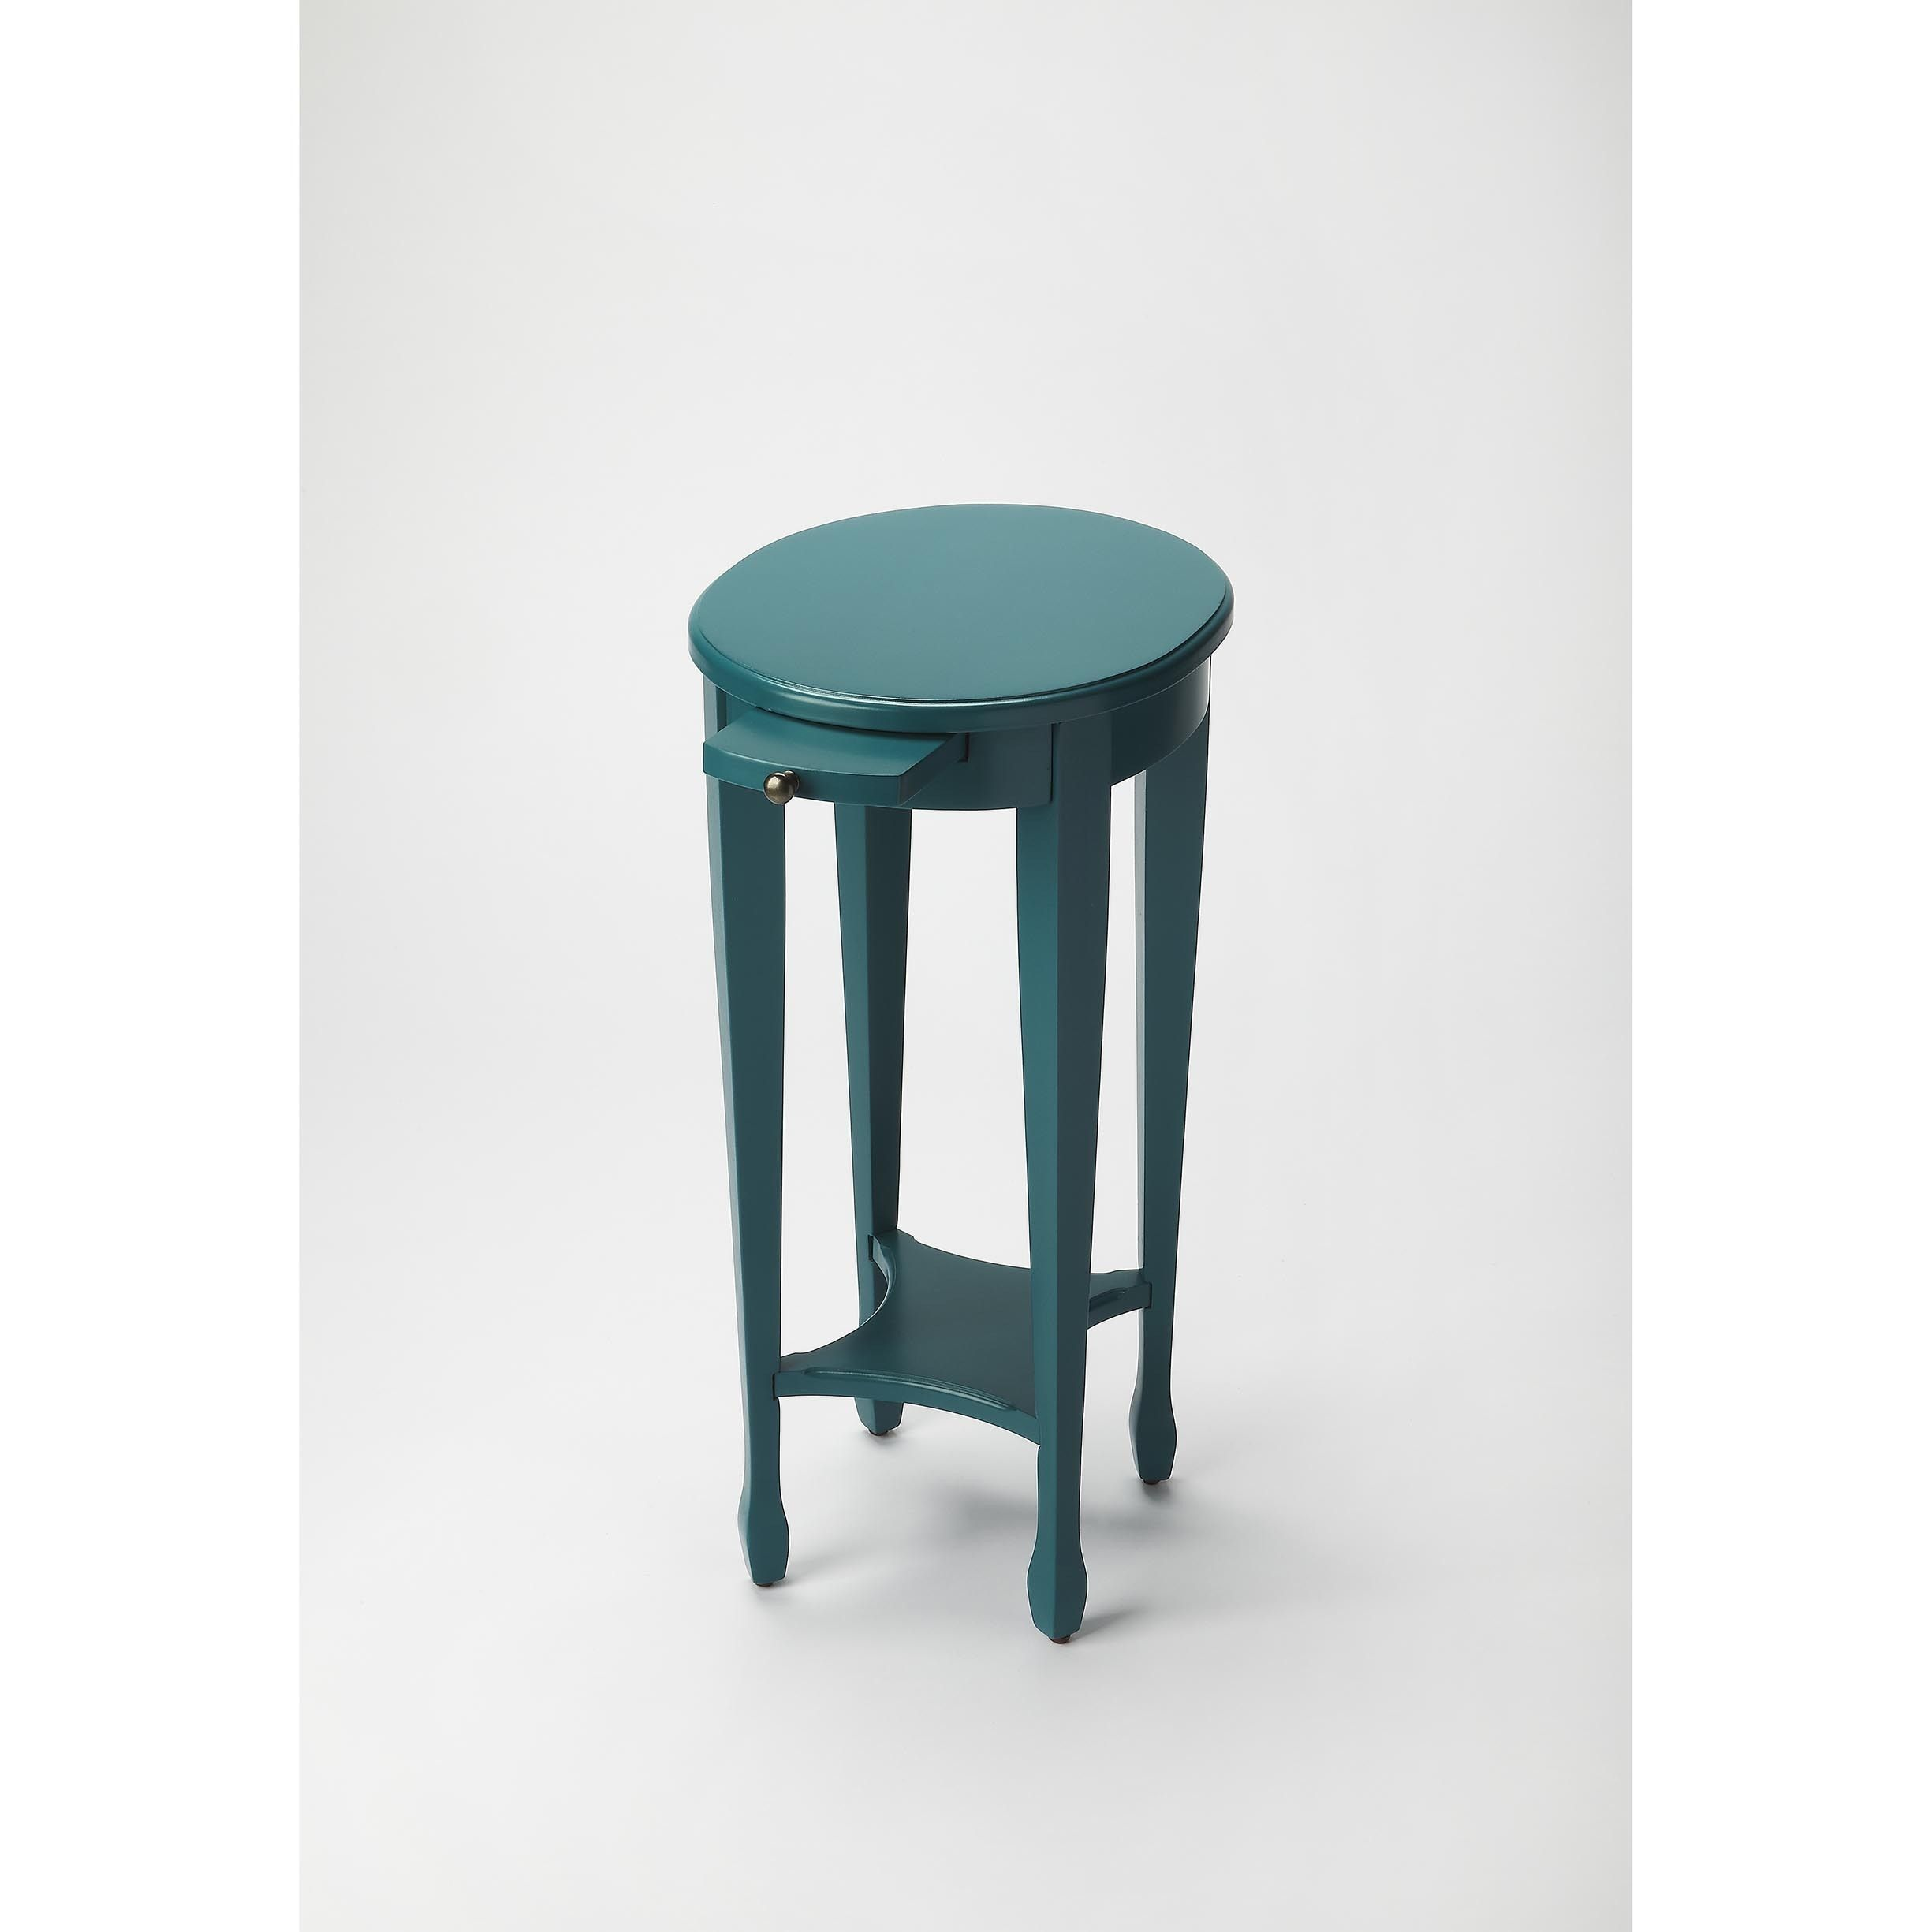 Butler Arielle Finish Wood and Round Accent Table